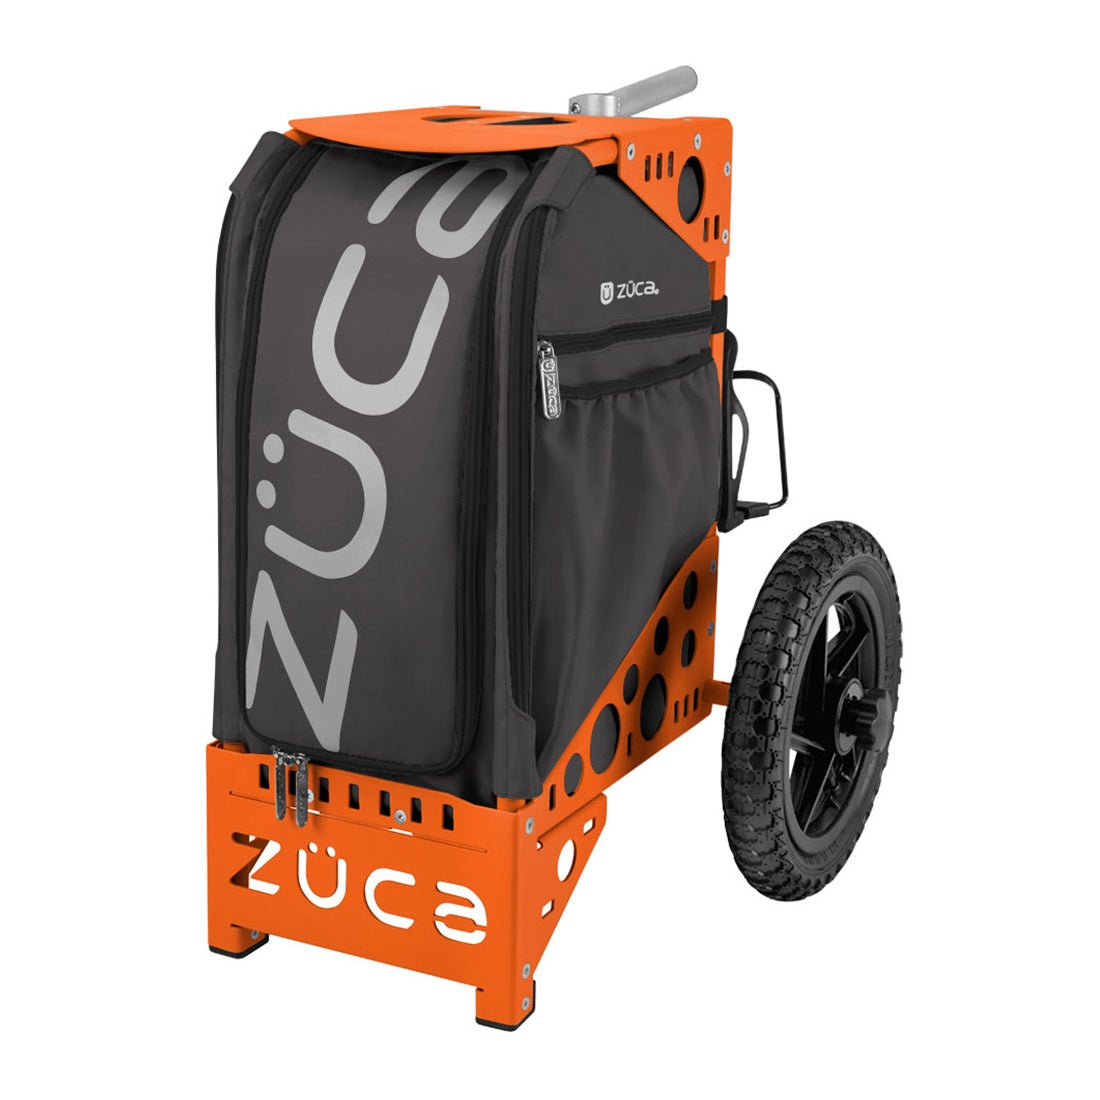 【SAC'S BAR】ズーカ ZUCA キャリーケース 1310 ALL-TERRAIN Gunmetal/Orange メンズ